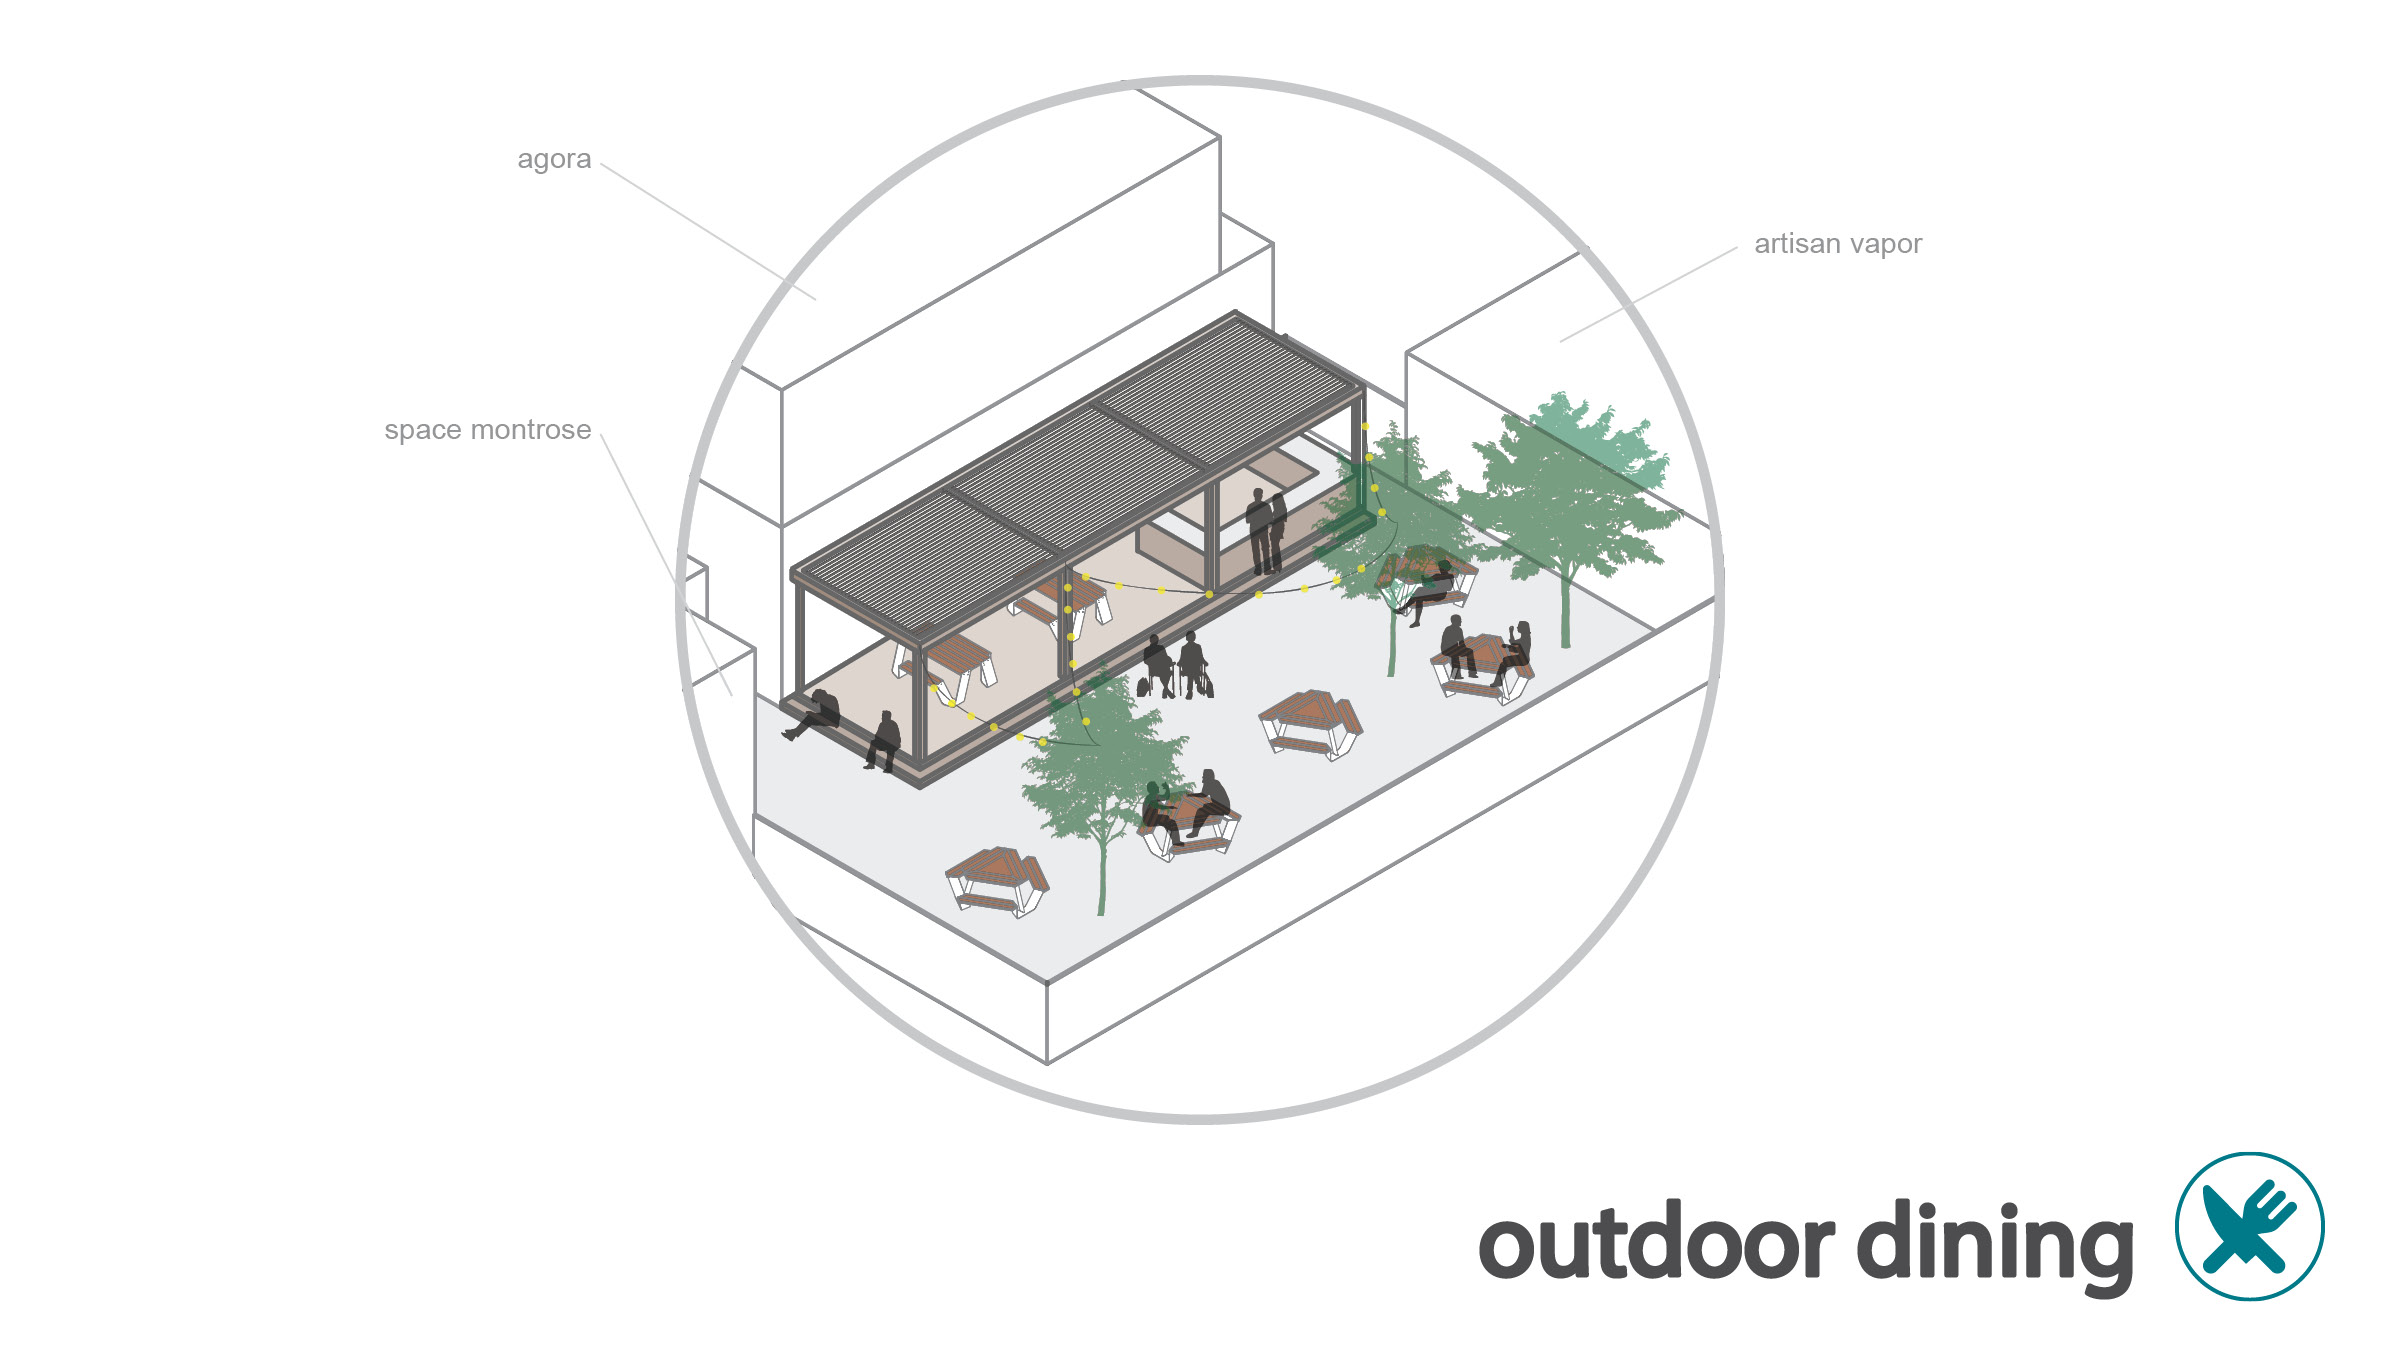 backyard parking spaces are re-purposed to outdoor dining, increasing the store's occupancy limit